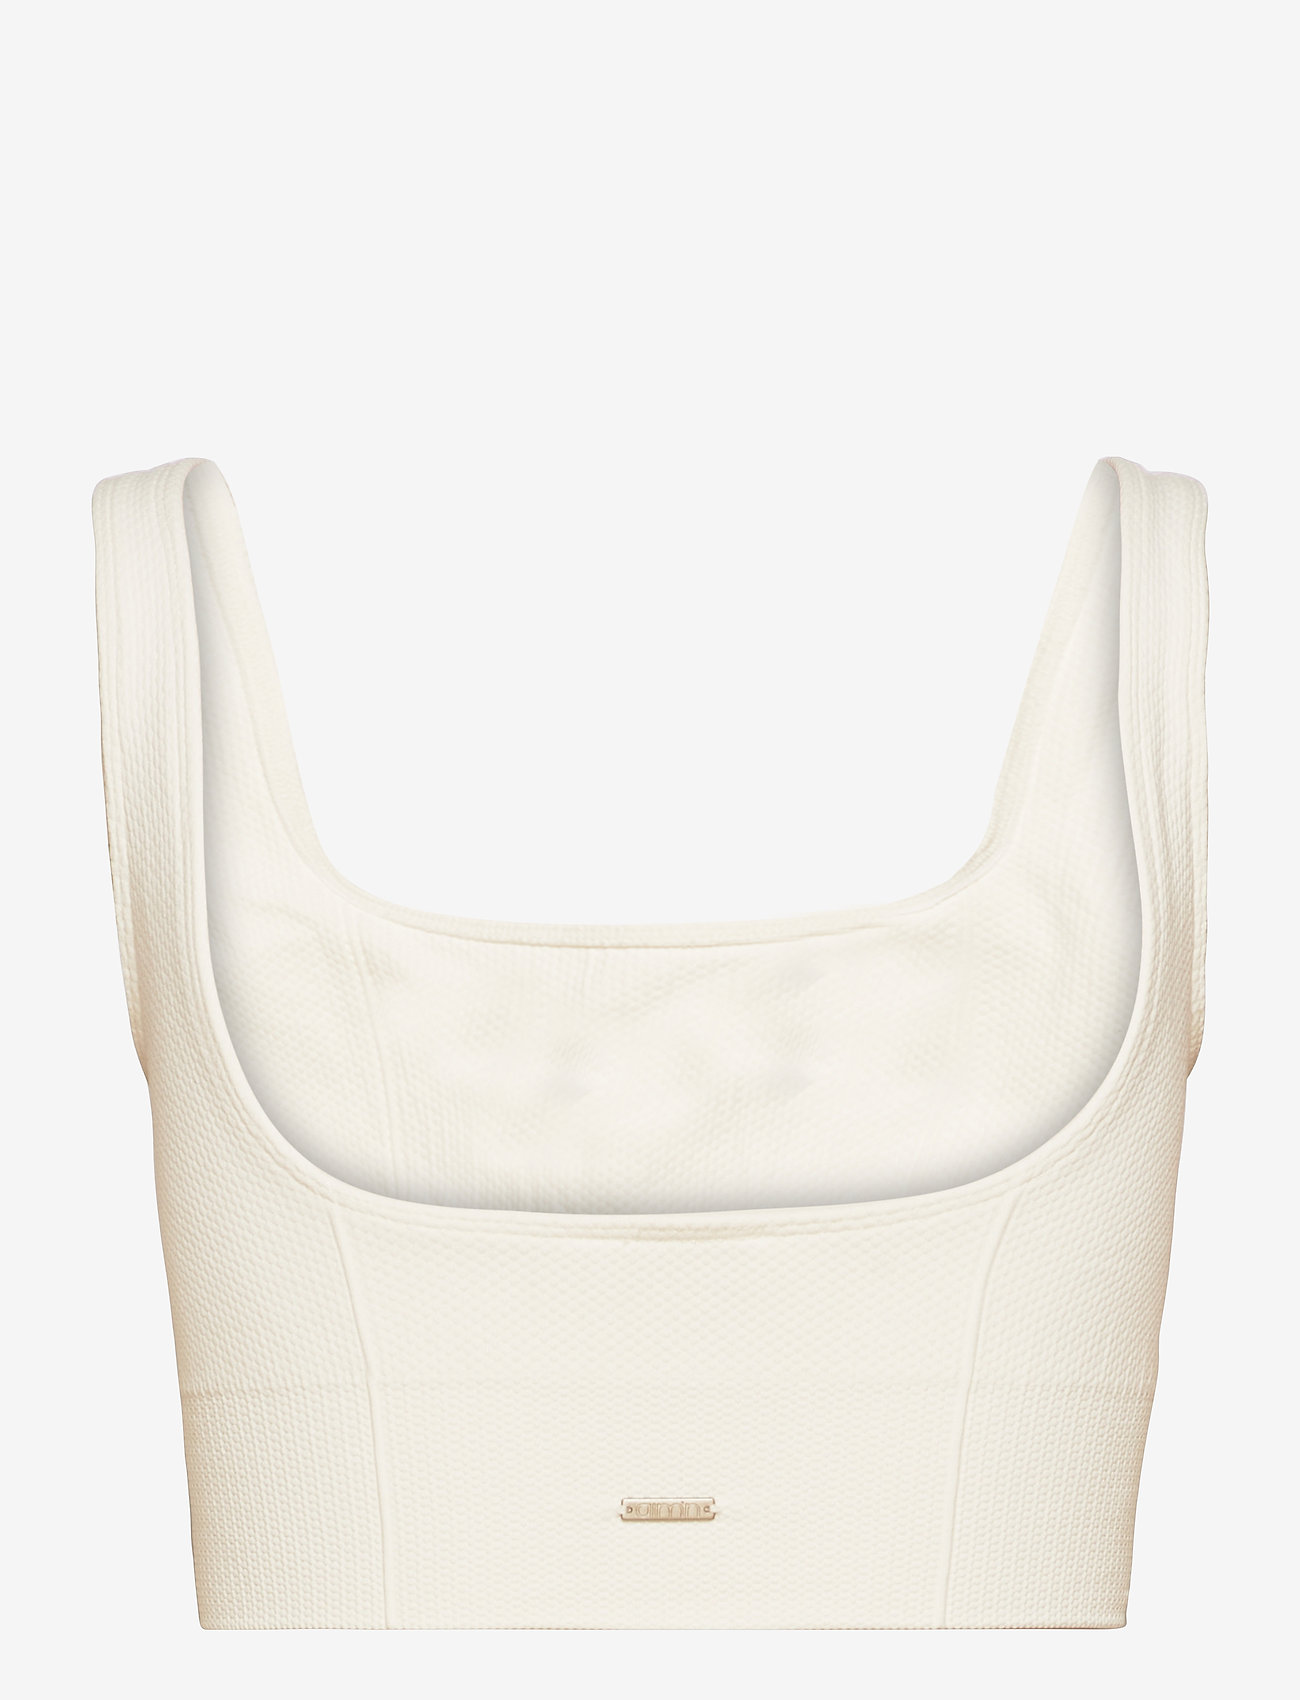 AIM'N - Off-White Luxe Seamless Bra - sport bras: low support - off-white - 1